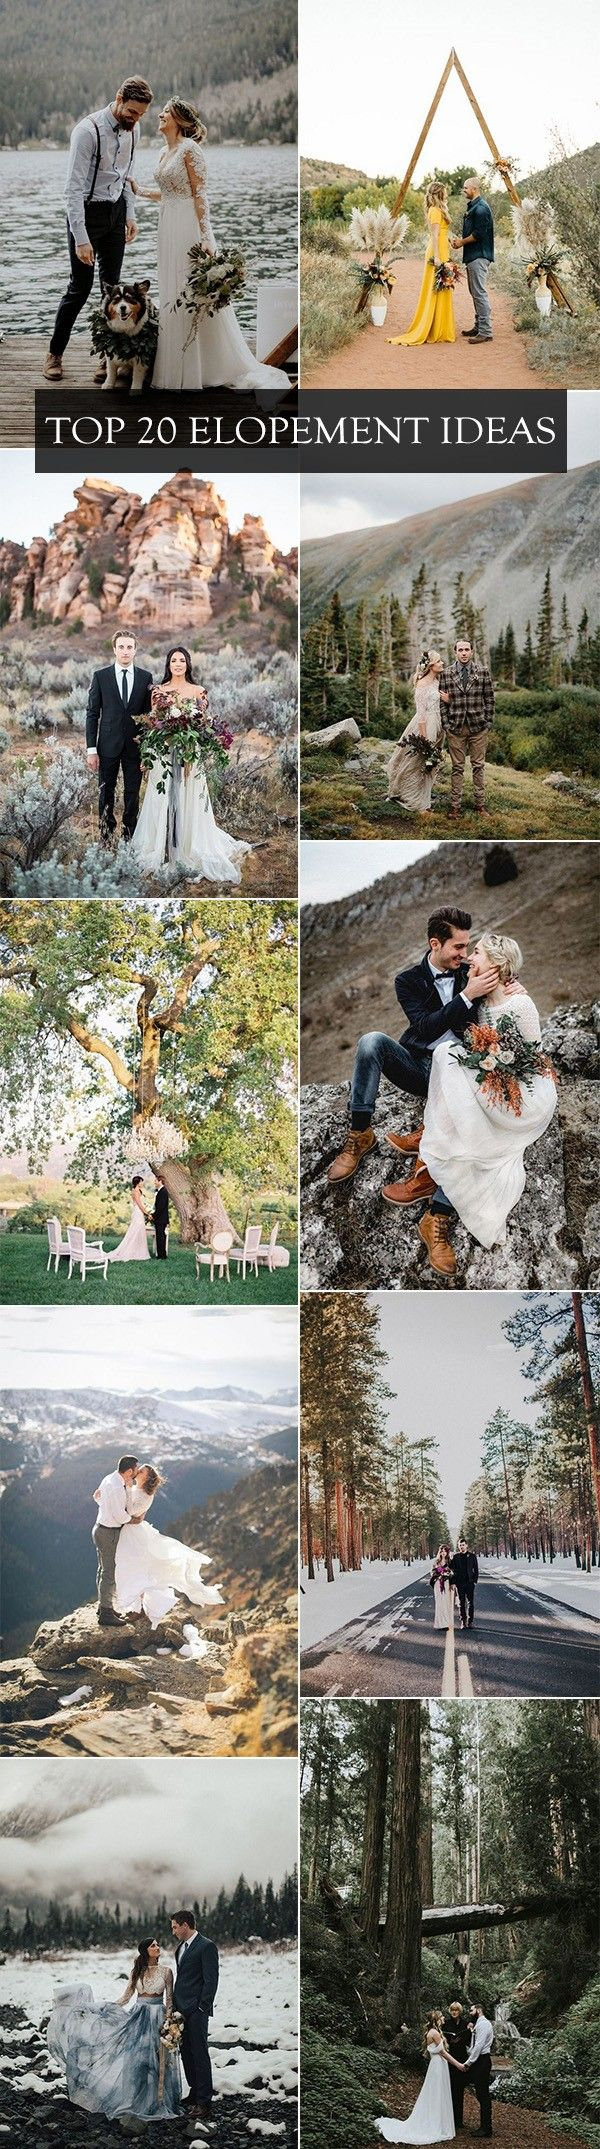 small intimate weddings southern california%0A Top    Elopement Ideas You u    ll Love  Elopement IdeasIntimate WeddingsOutdoor